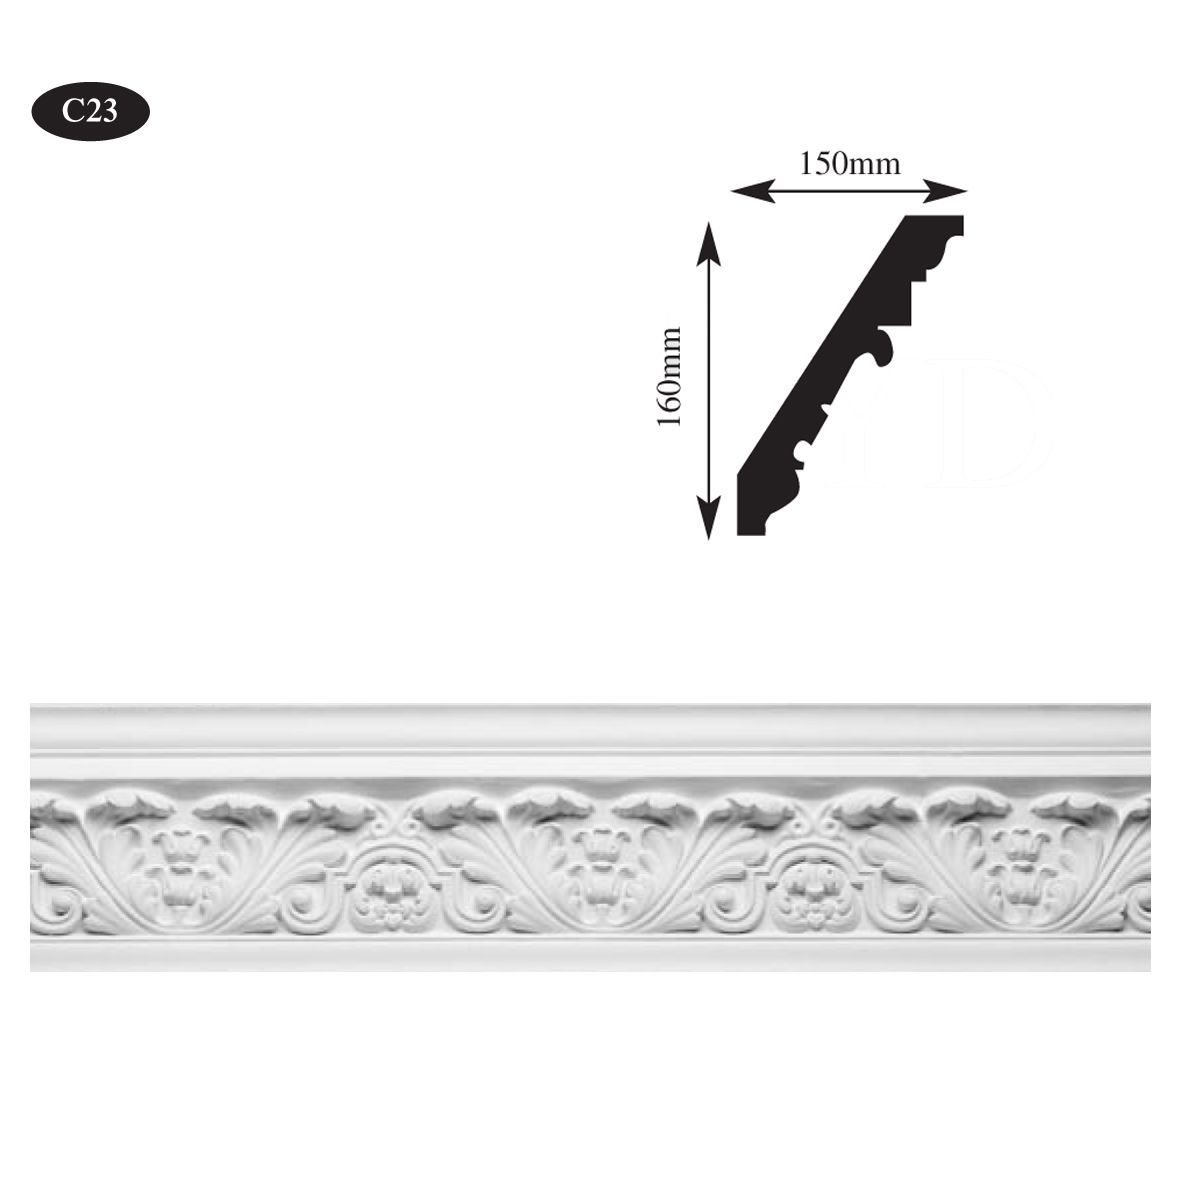 Ornate plaster cornice Glasgow